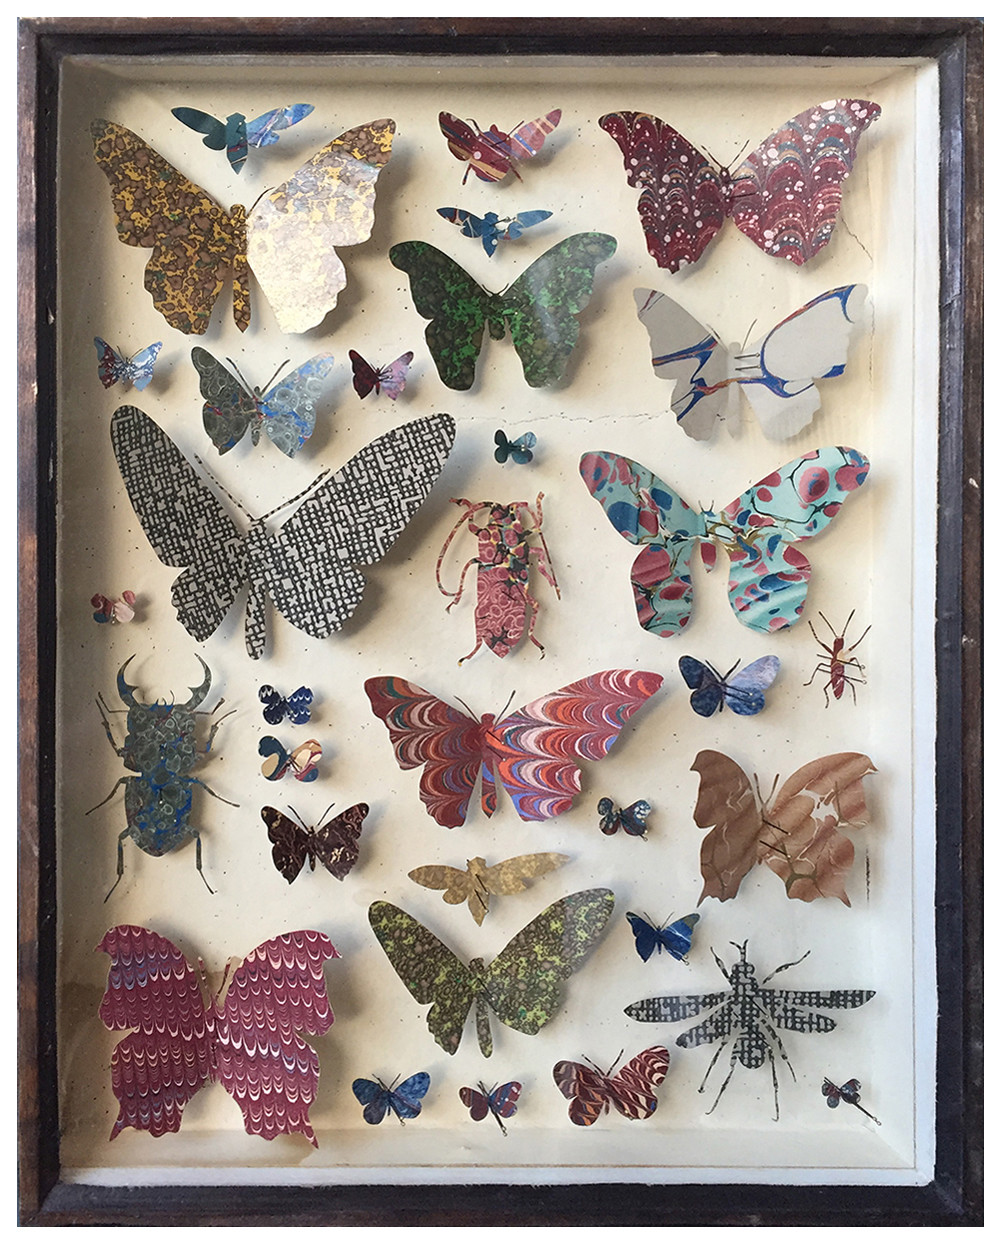 "<span class=""link fancybox-details-link""><a href=""/artists/142-helen-ward/works/6234-helen-ward-entomology-case-8-2019/"">View Detail Page</a></span><div class=""artist""><strong>Helen Ward</strong></div> <div class=""title""><em>Entomology Case 8</em>, 2019</div> <div class=""medium"">Victorian entomology drawer, hand-marbled papers, enamel pins</div> <div class=""dimensions"">39 x 29 cm</div><div class=""price"">£595.00</div><div class=""copyright_line"">Own Art: £ 59.50 x 10 Monthly 0% APR Representative Payments</div>"